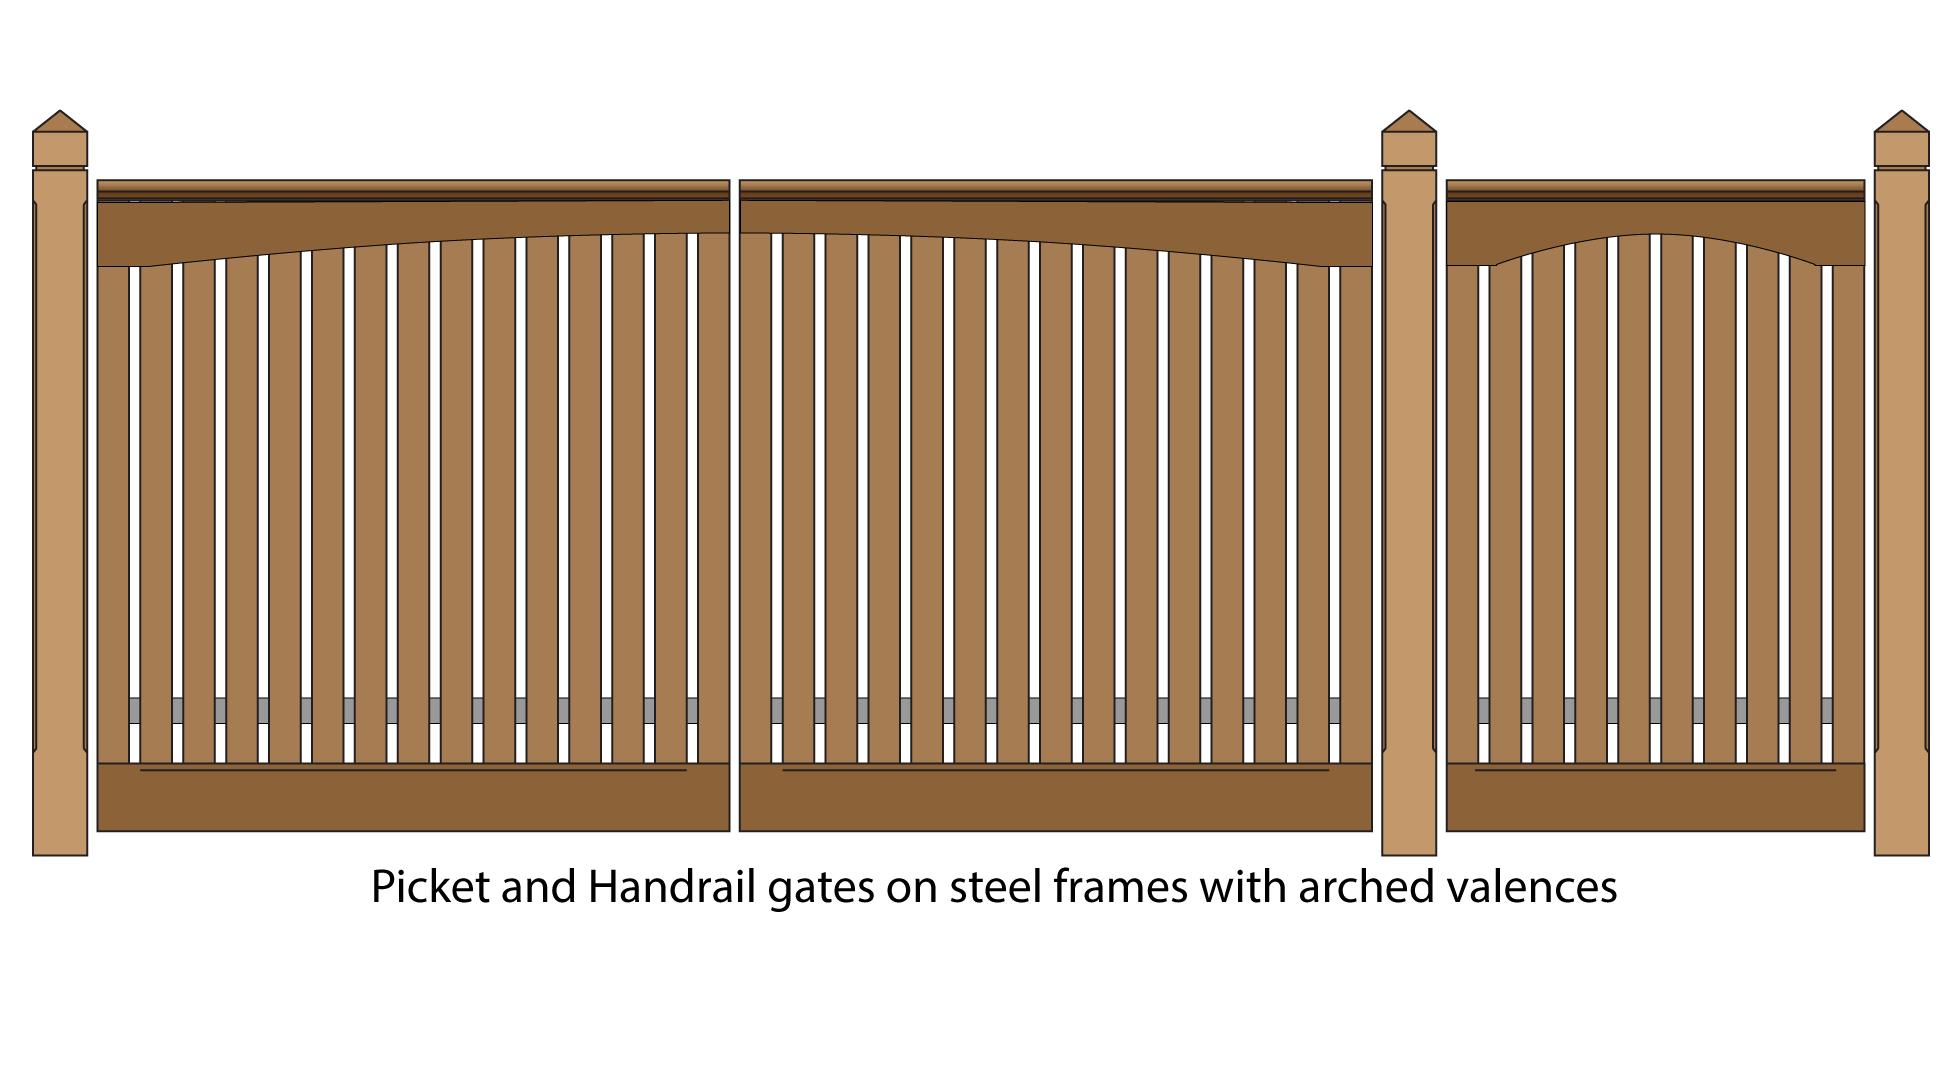 Picket and handrail gates  with arched valences